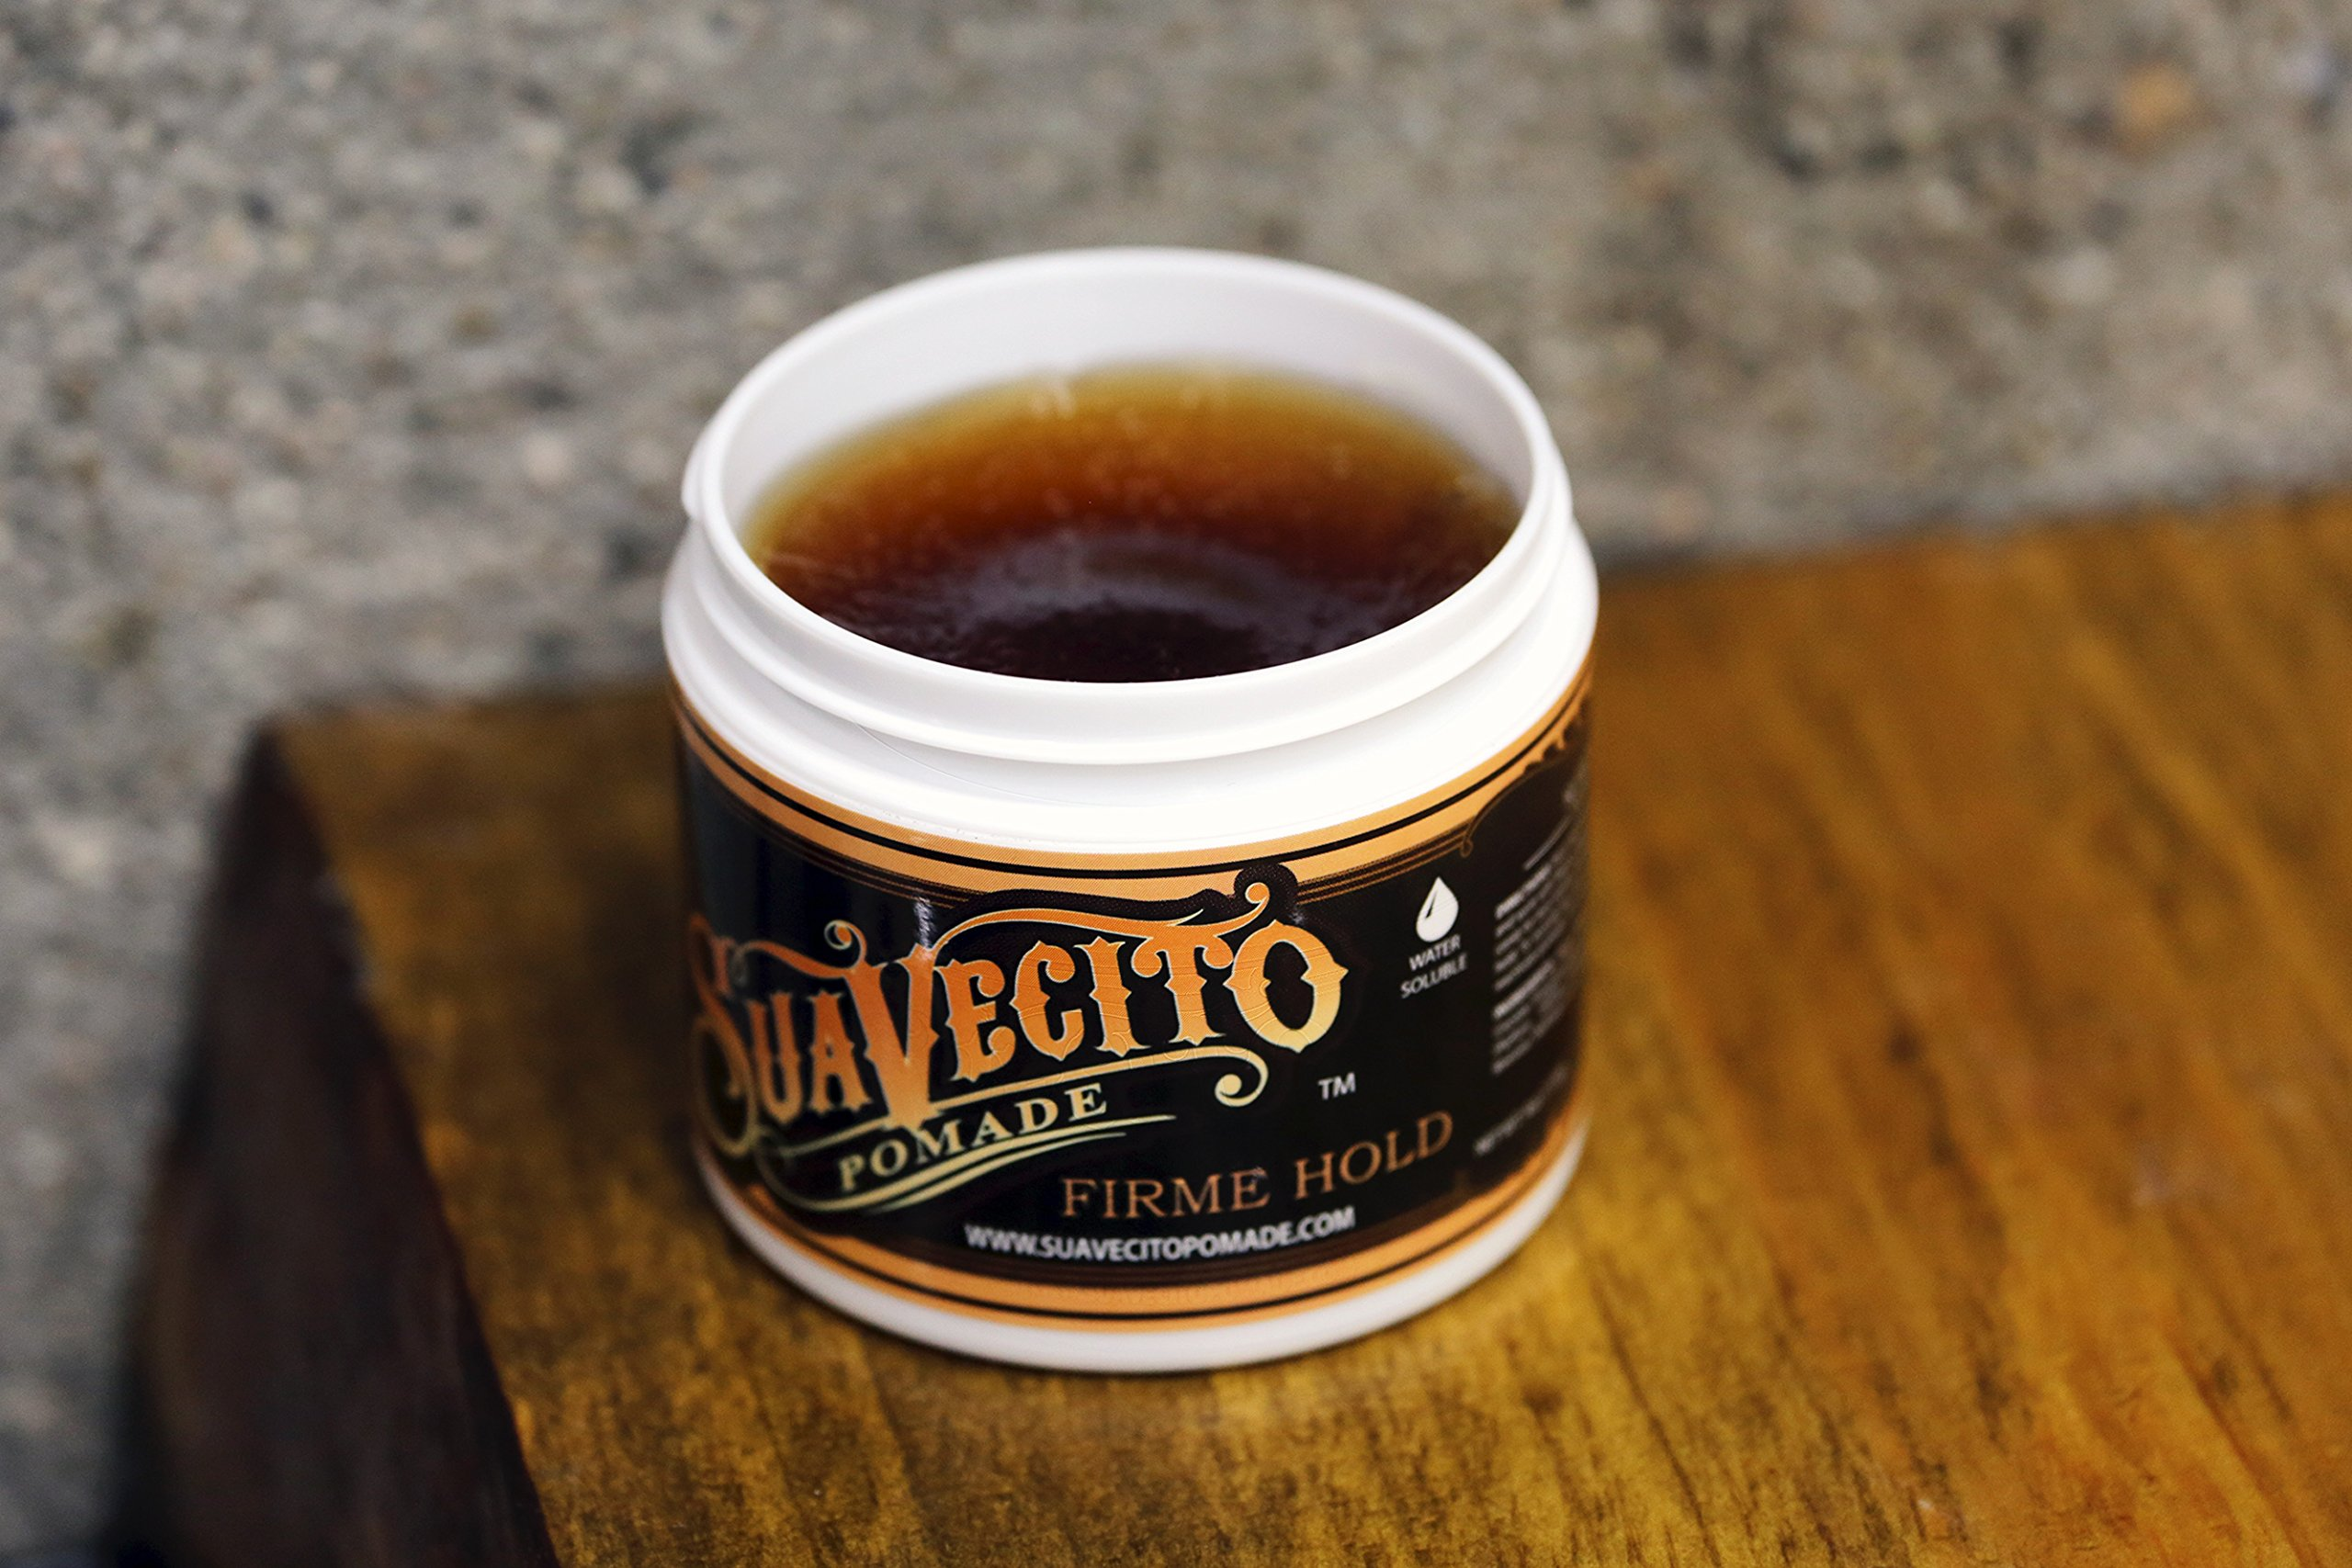 Suavecito Pomade Firme Strong Hold 4 Oz P002nn Styling Original Made In Usa Products Beauty Personal Care Tibs